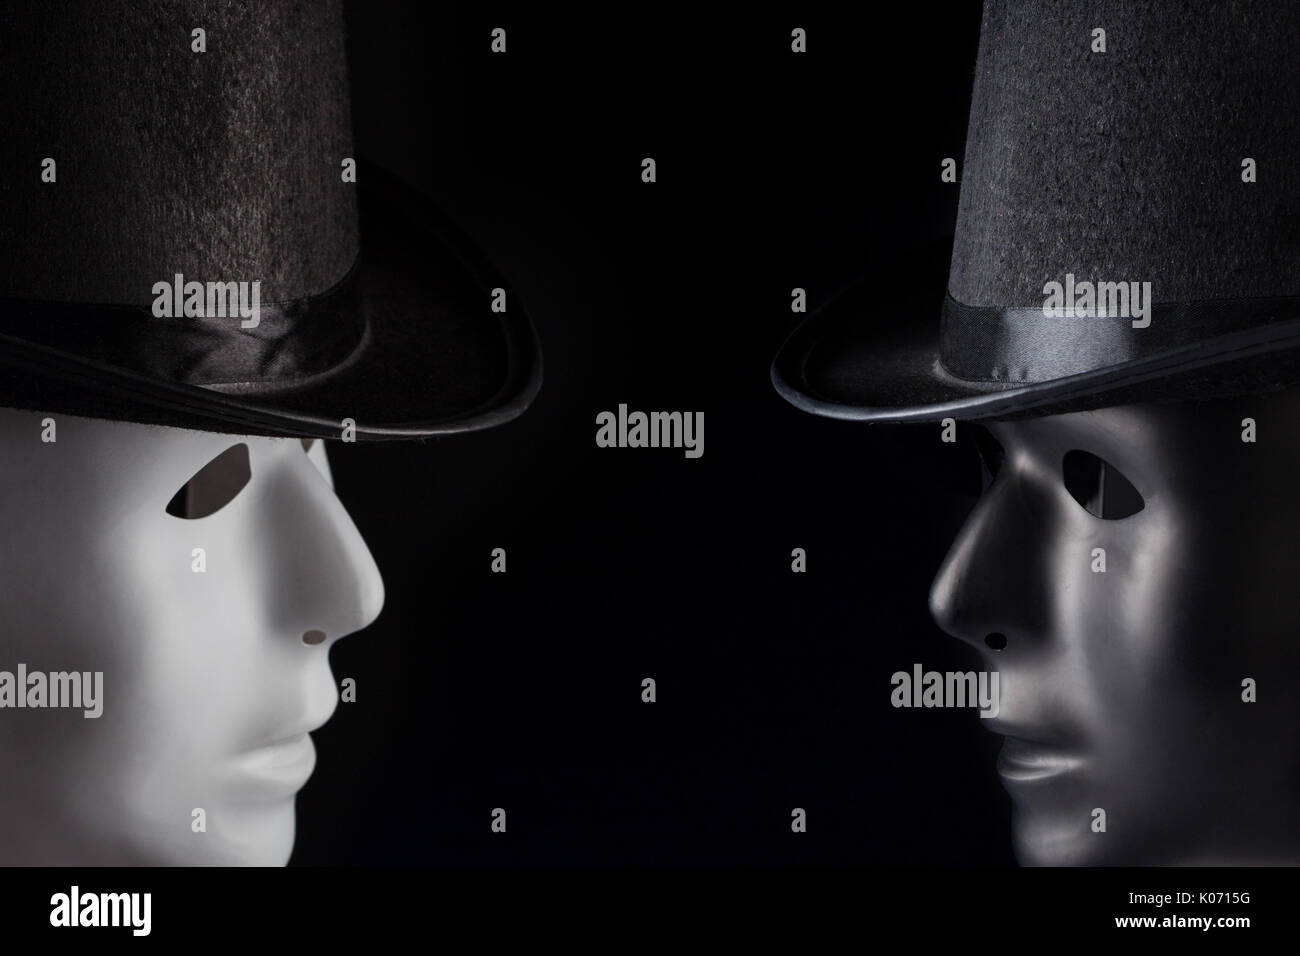 Black and white masks wearing top hats looking at each other isolated on black background with copy space. Dialogue and conversation concept - Stock Image